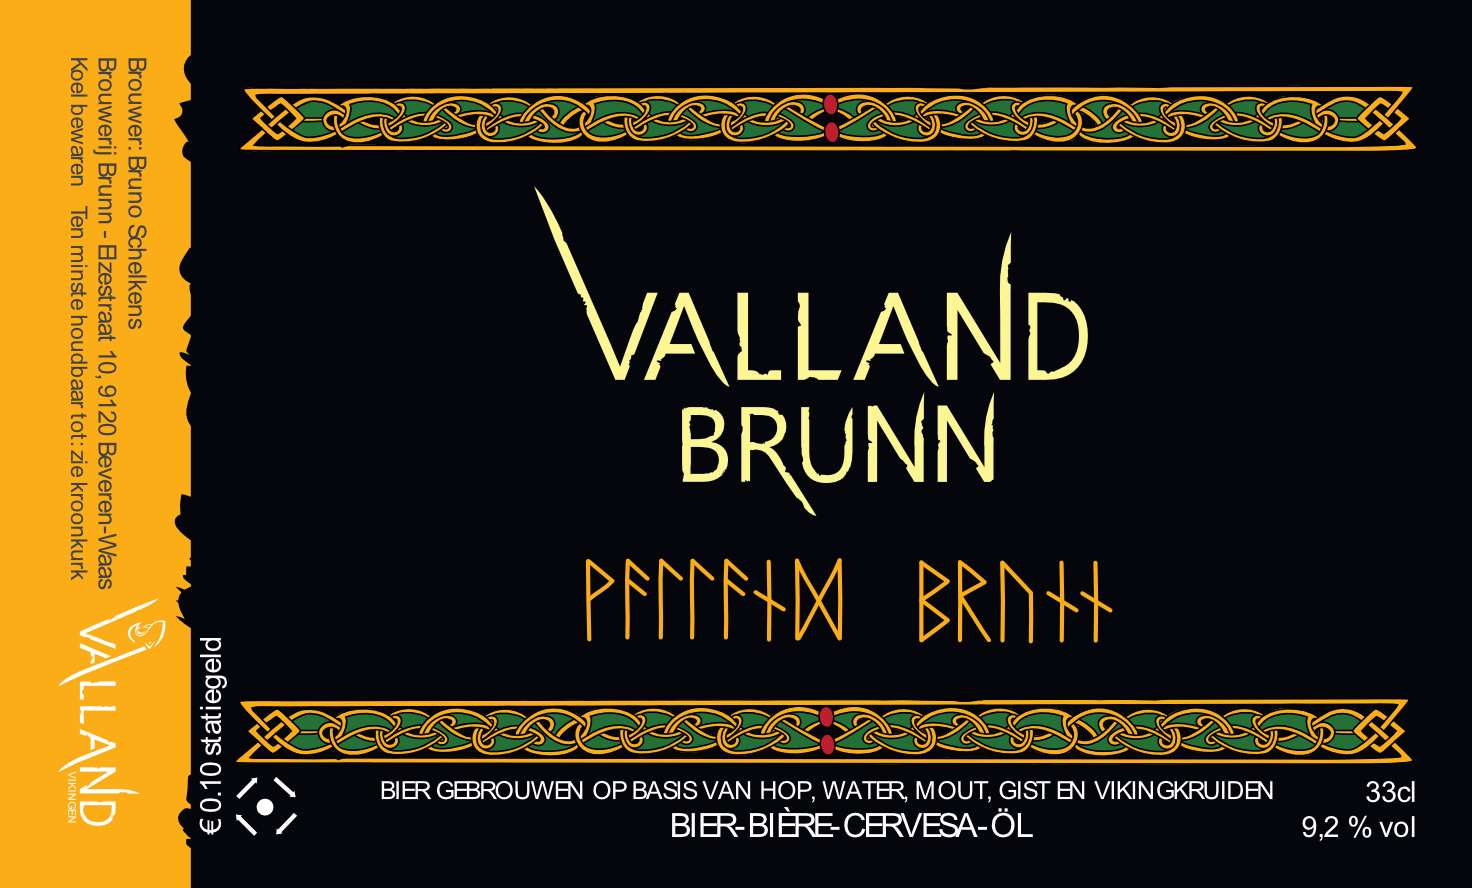 Valland Brunn